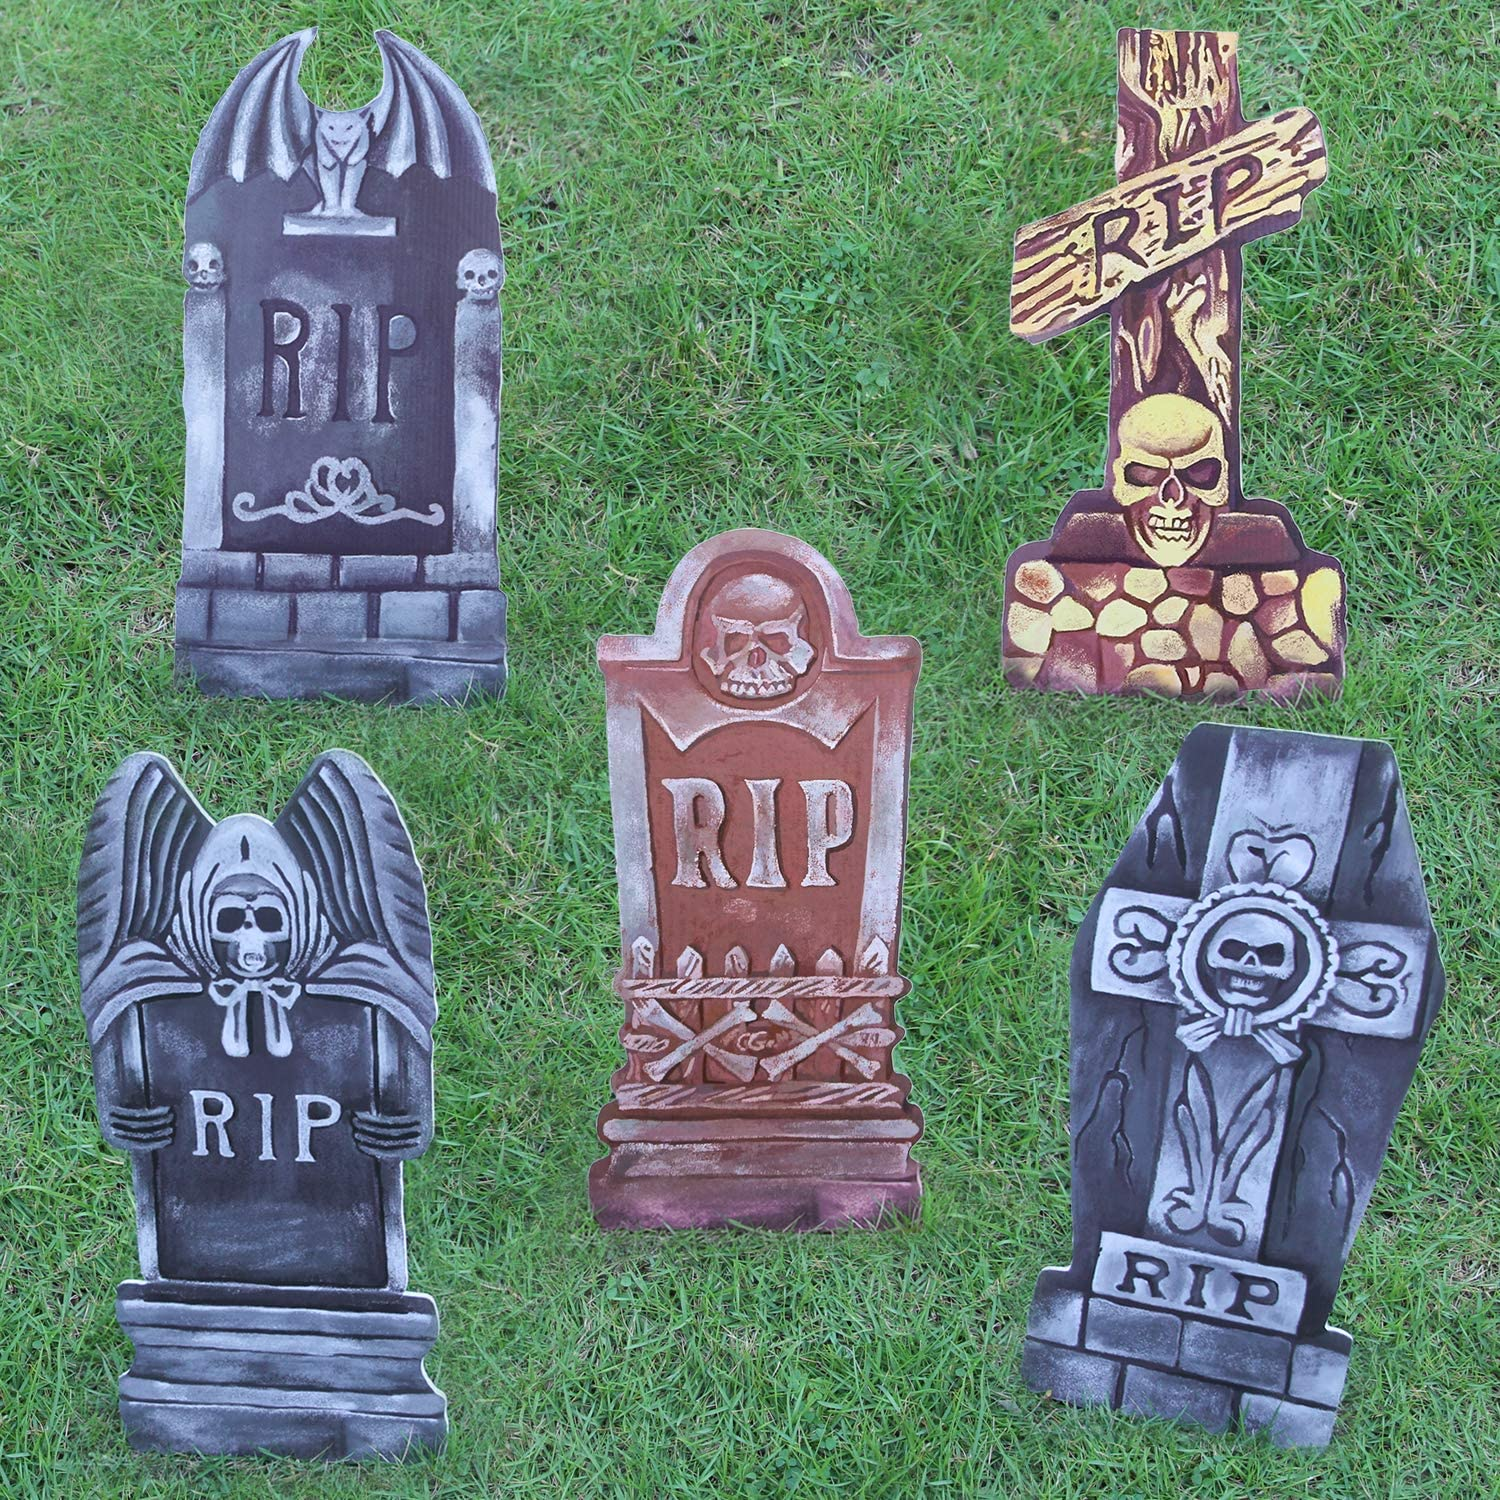 Halloween Yard Sign Eye-catching Halloween Yard Decor Spooky Tombstones Signs Designs of RIP Skull Cross Large Size Scary Halloween Decorations in Entrances / Backyards / Lawns / Interiors (5pcs)